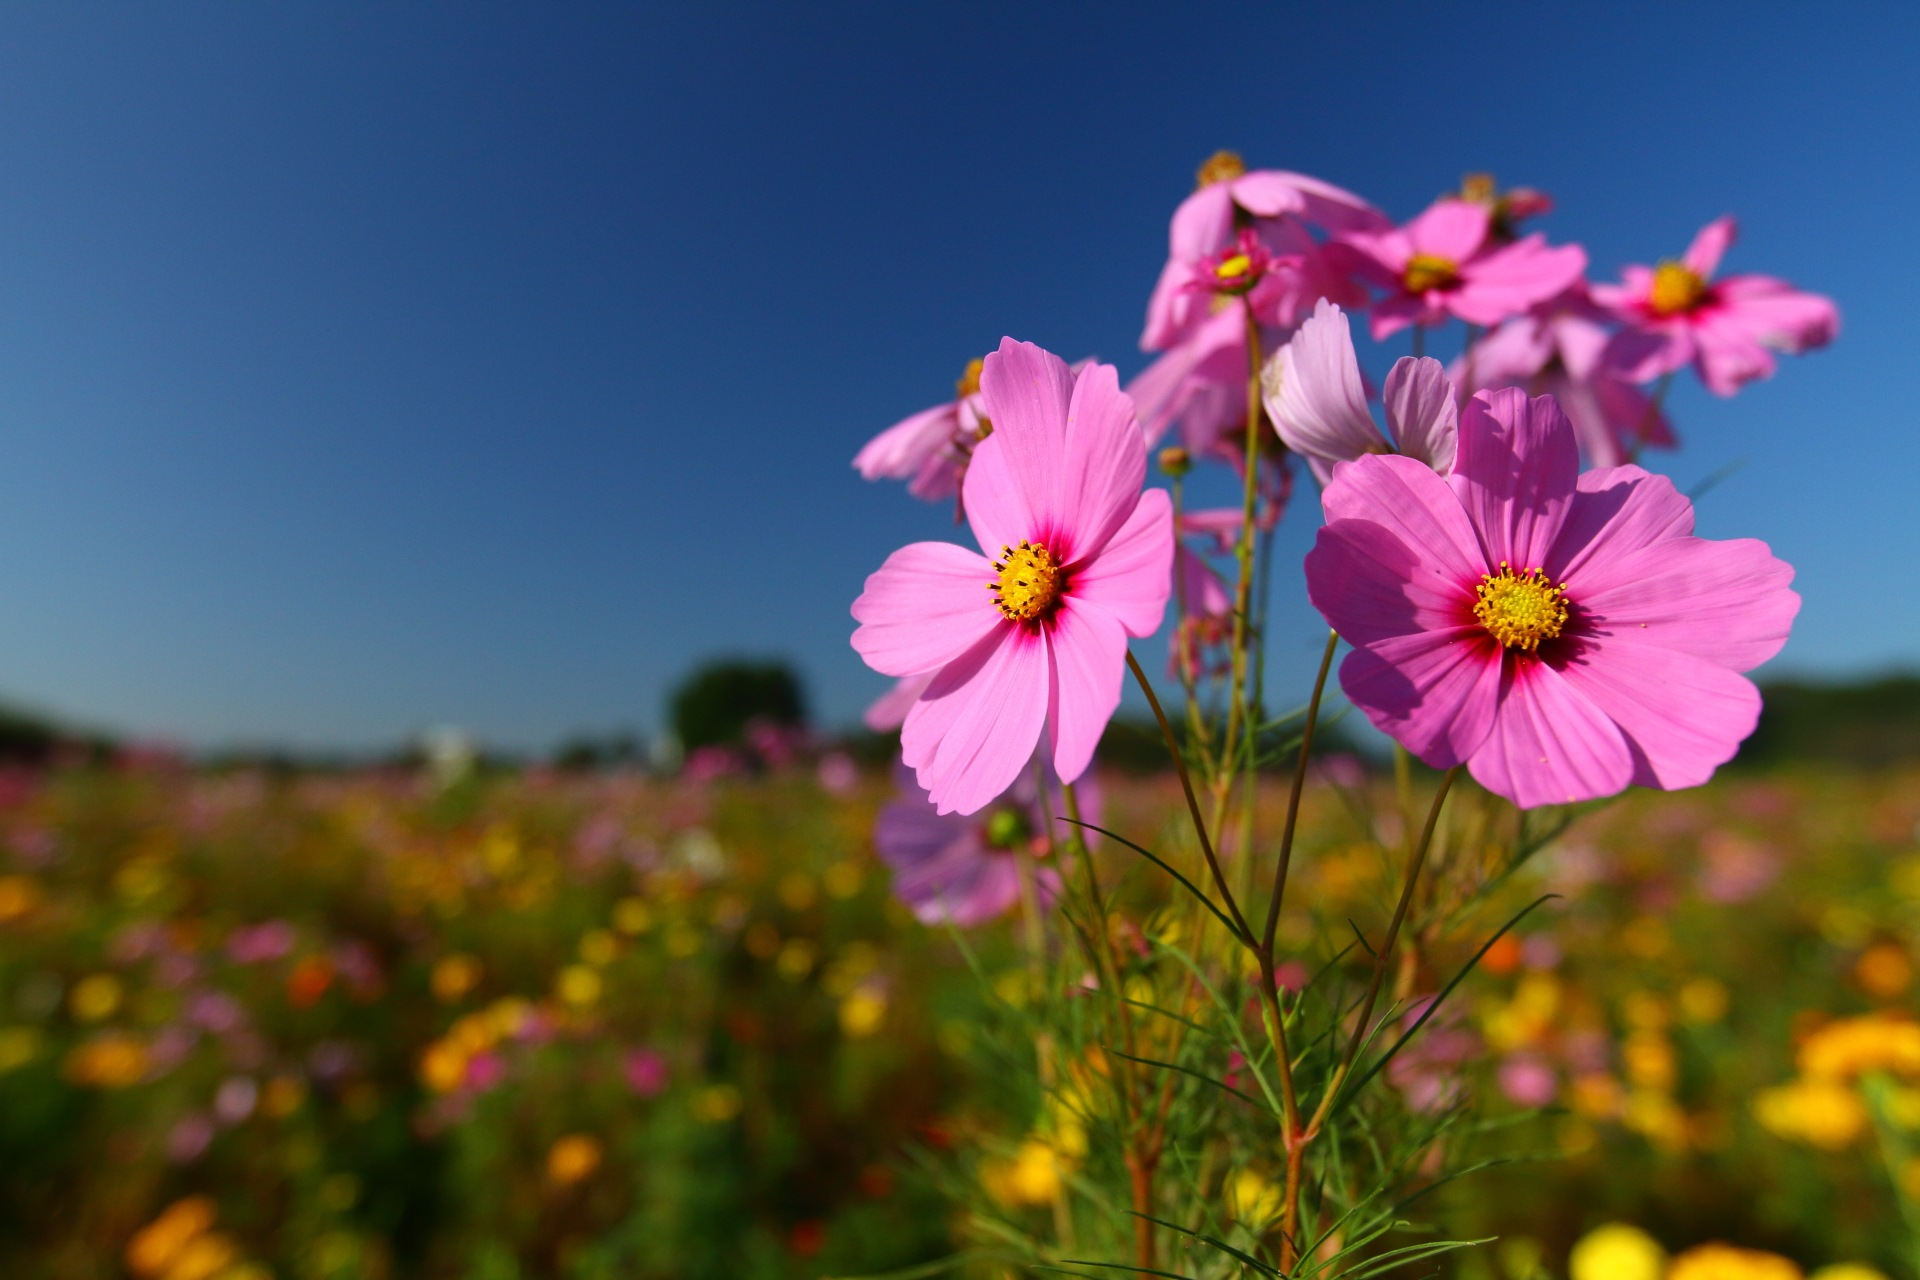 Cosmos in the Blue Sky by takashi.mizoguchi